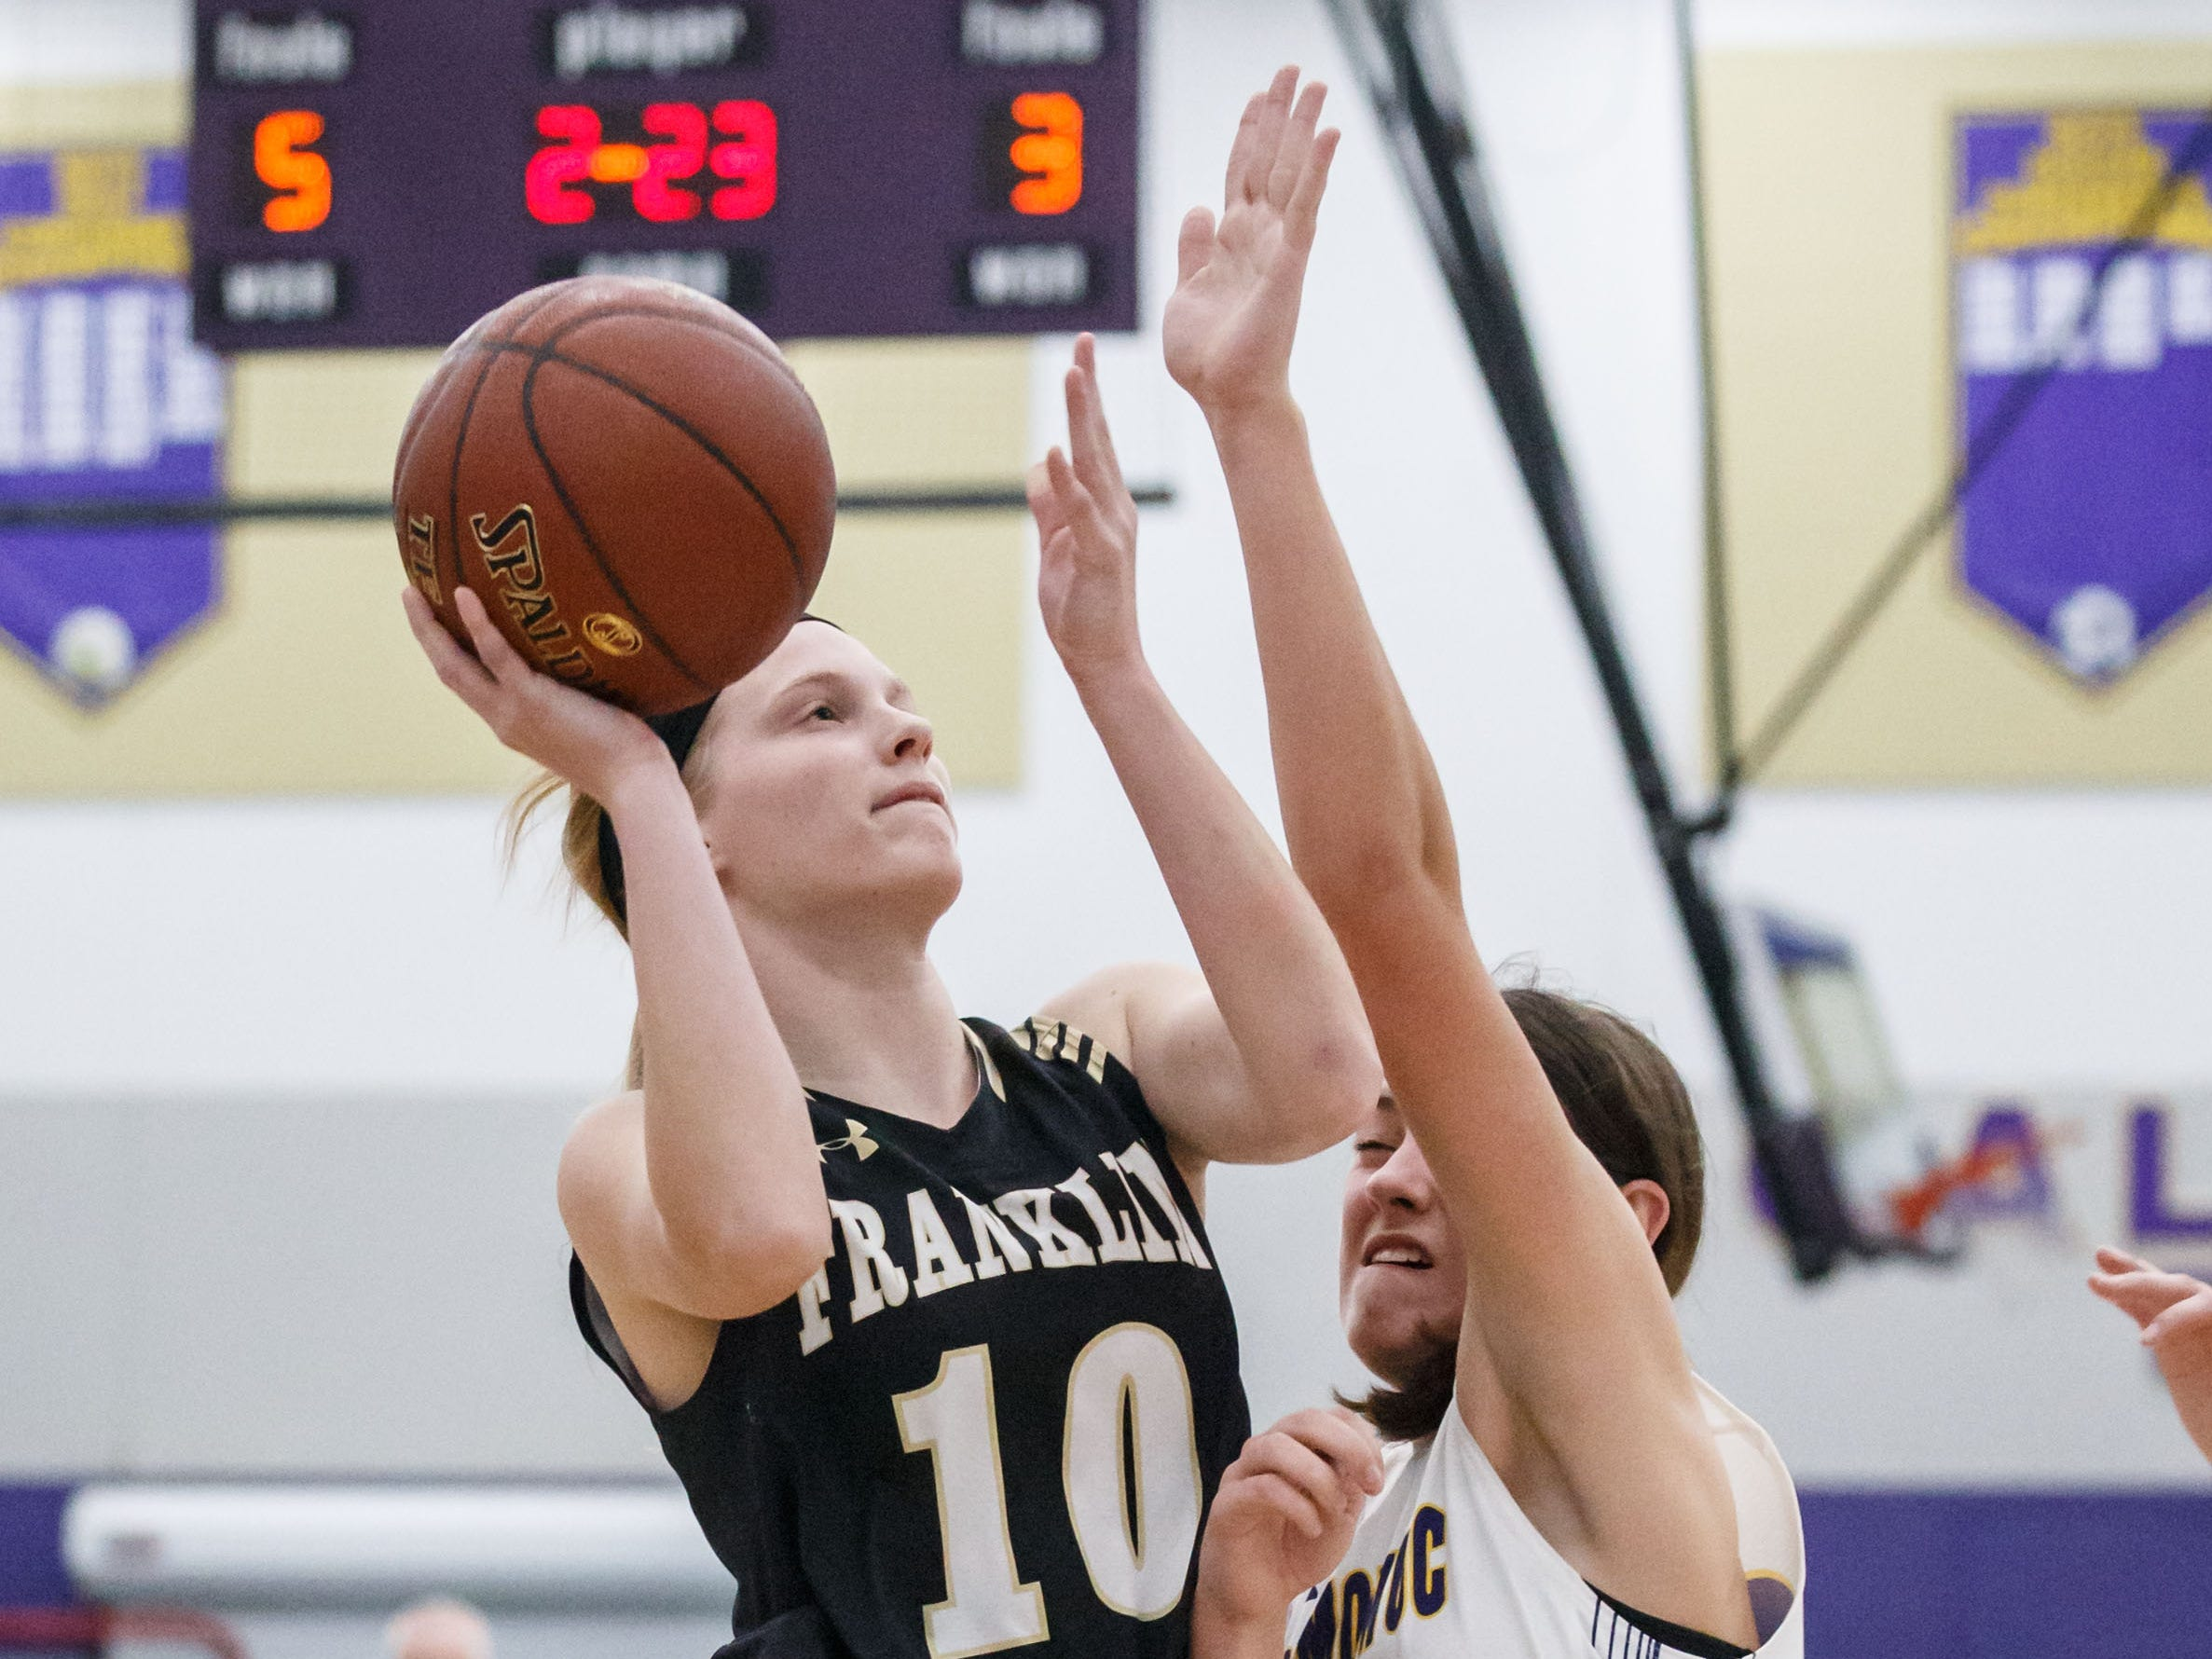 Franklin junior Lauren Schwartz (10) battles past Oconomowoc's Natalie Gricius (25) for a layup during the game at Oconomowoc on Monday, Nov. 19, 2018.